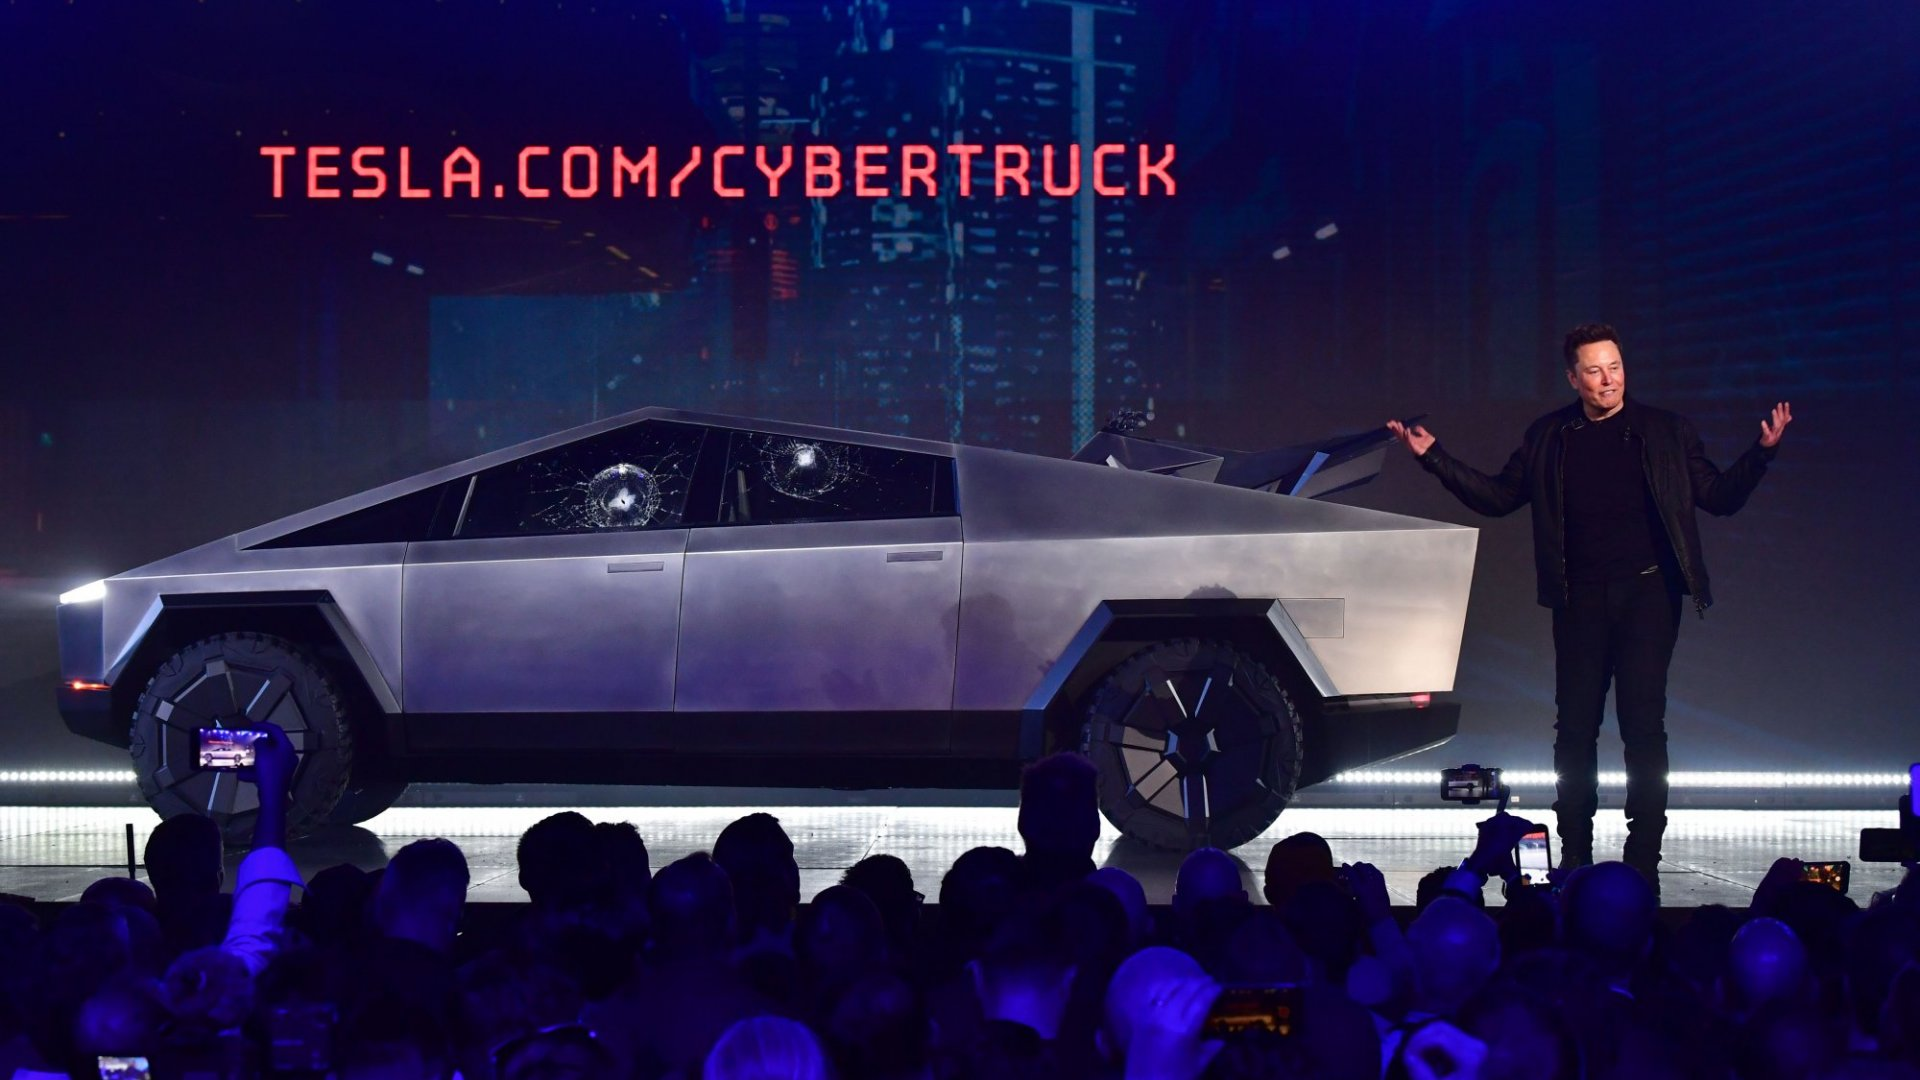 How Elon Musk Is Trying to Keep Cybertruck Relevant